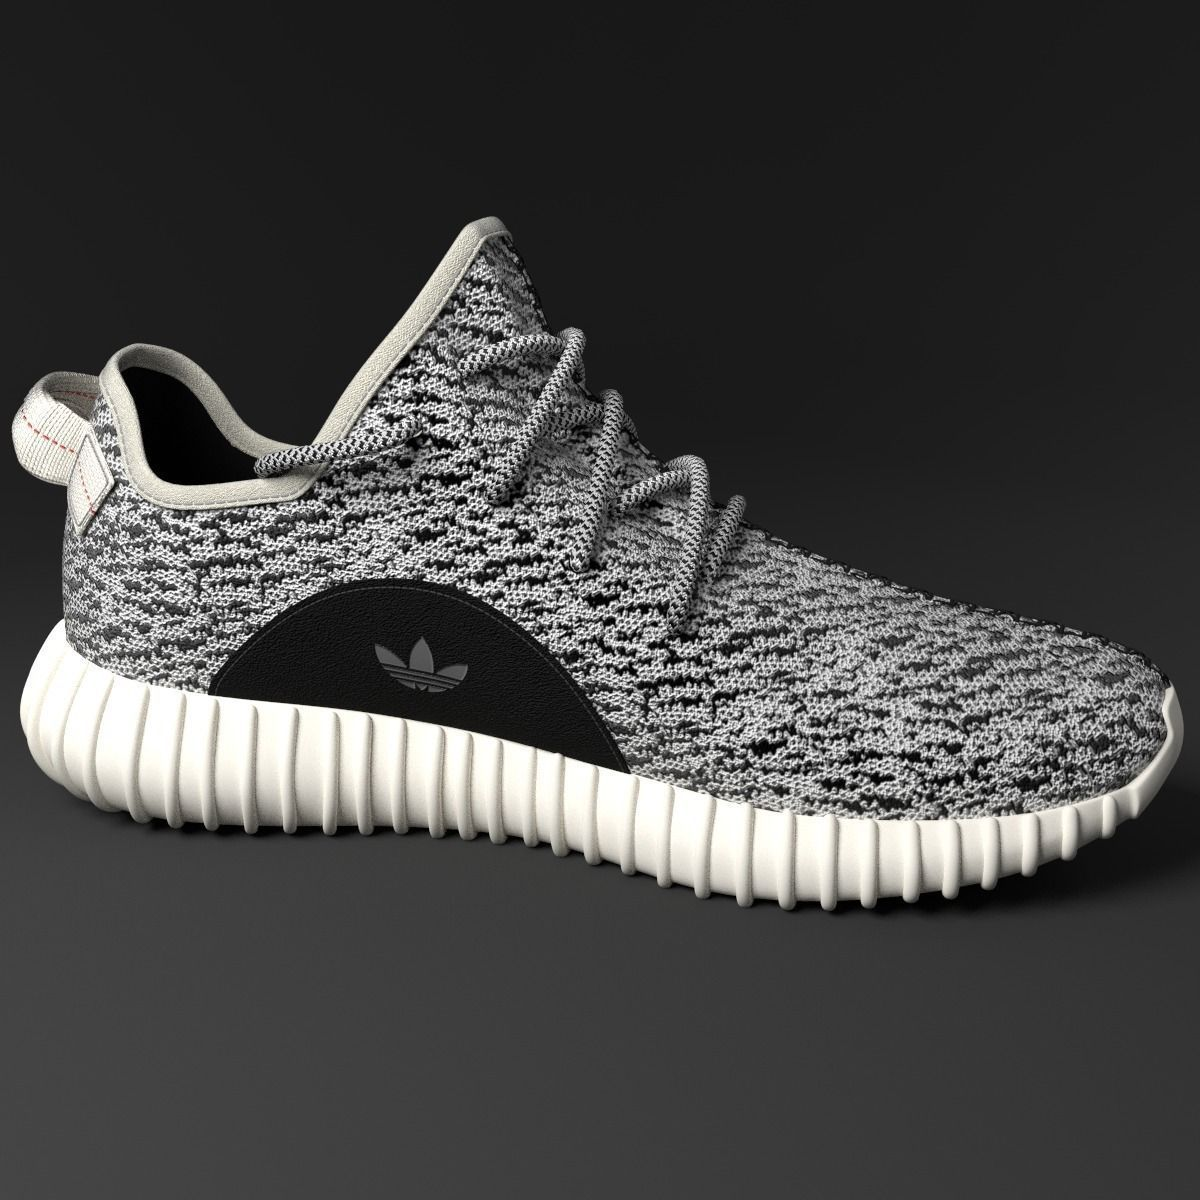 ... yeezy 350 low 3d model max obj fbx c4d stl blend 5 ...